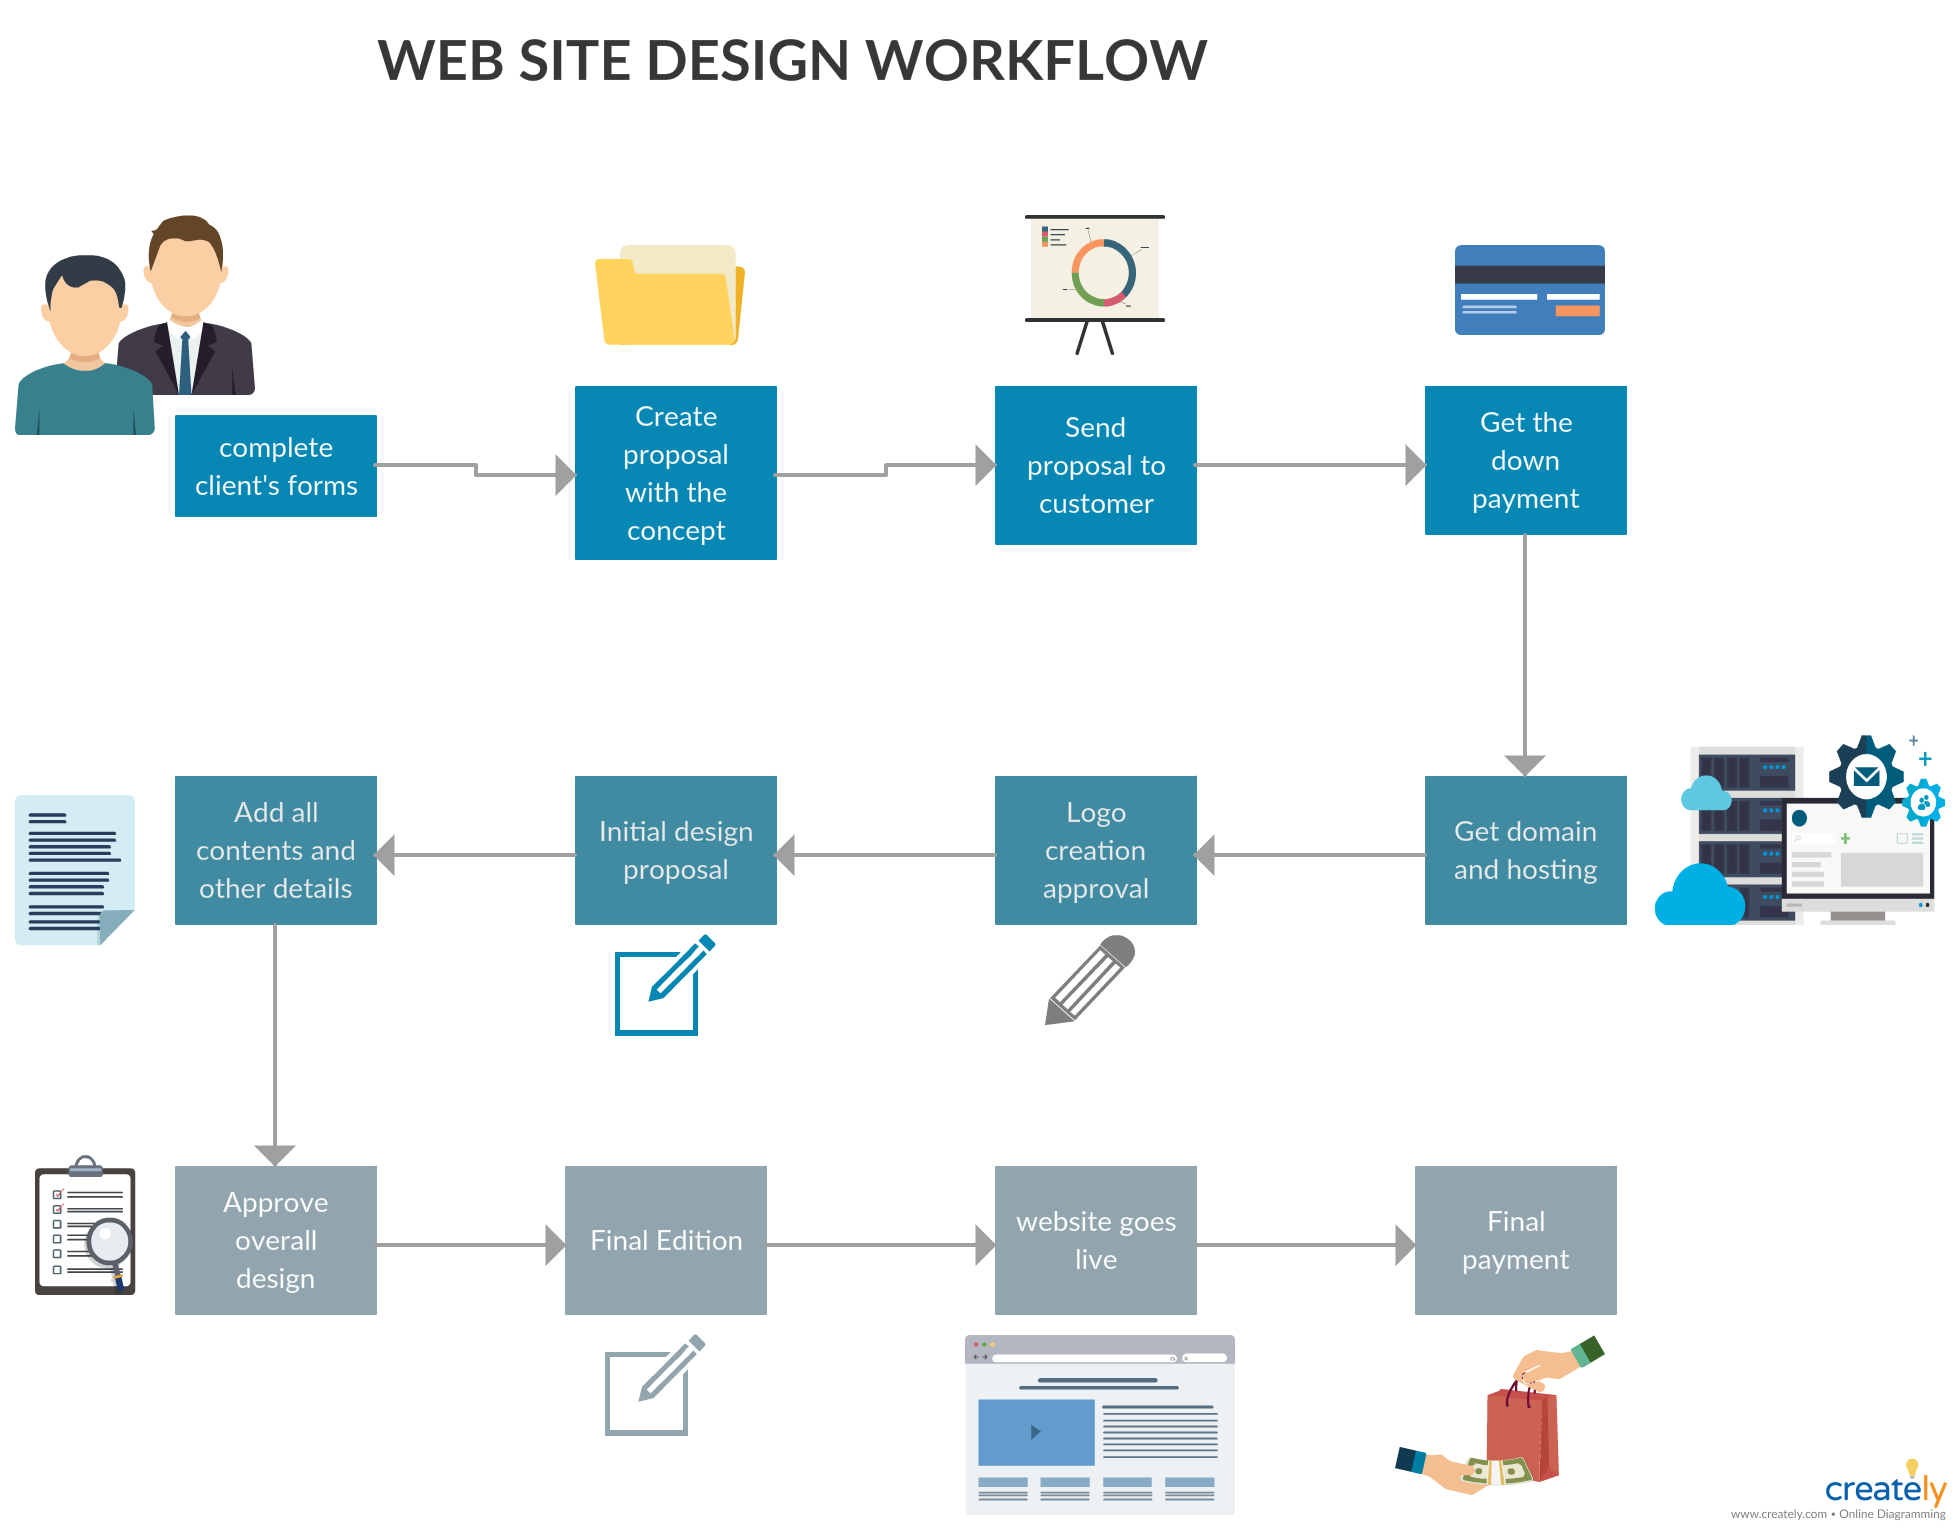 Web Site Design Workflow A Workflow Diagram For Website Designing This Diagram Shows The Process Of Client Form Website Design Site Design Workflow Diagram